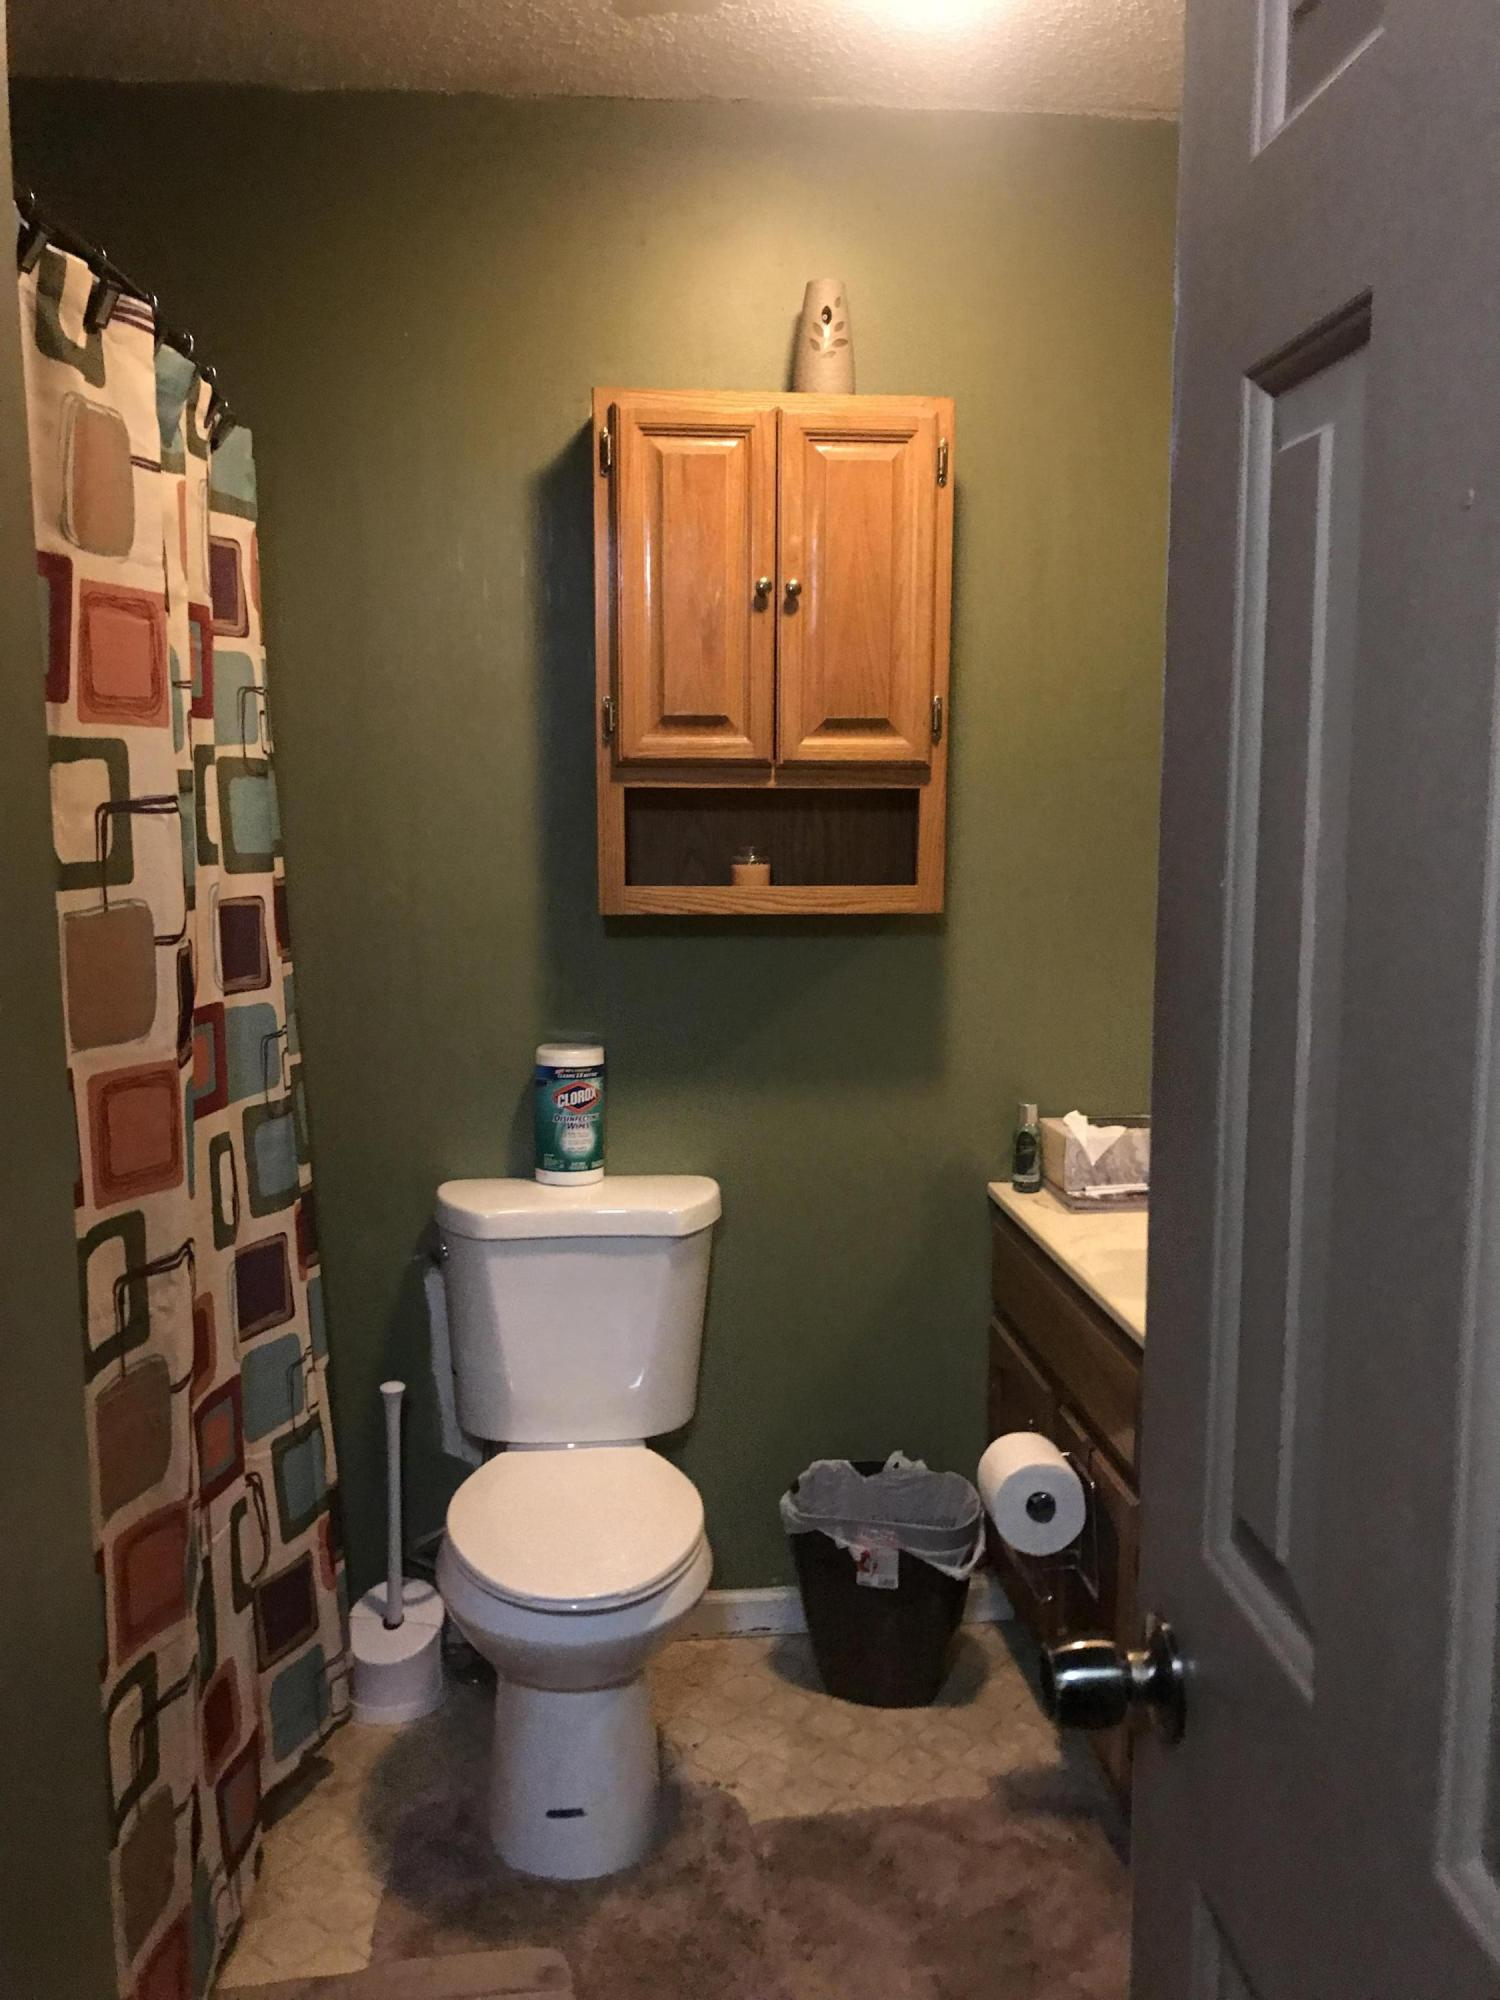 8616 Whitlock Lane, Knoxville, Tennessee 37924, 3 Bedrooms Bedrooms, ,2 BathroomsBathrooms,Single Family,For Sale,Whitlock,1090671